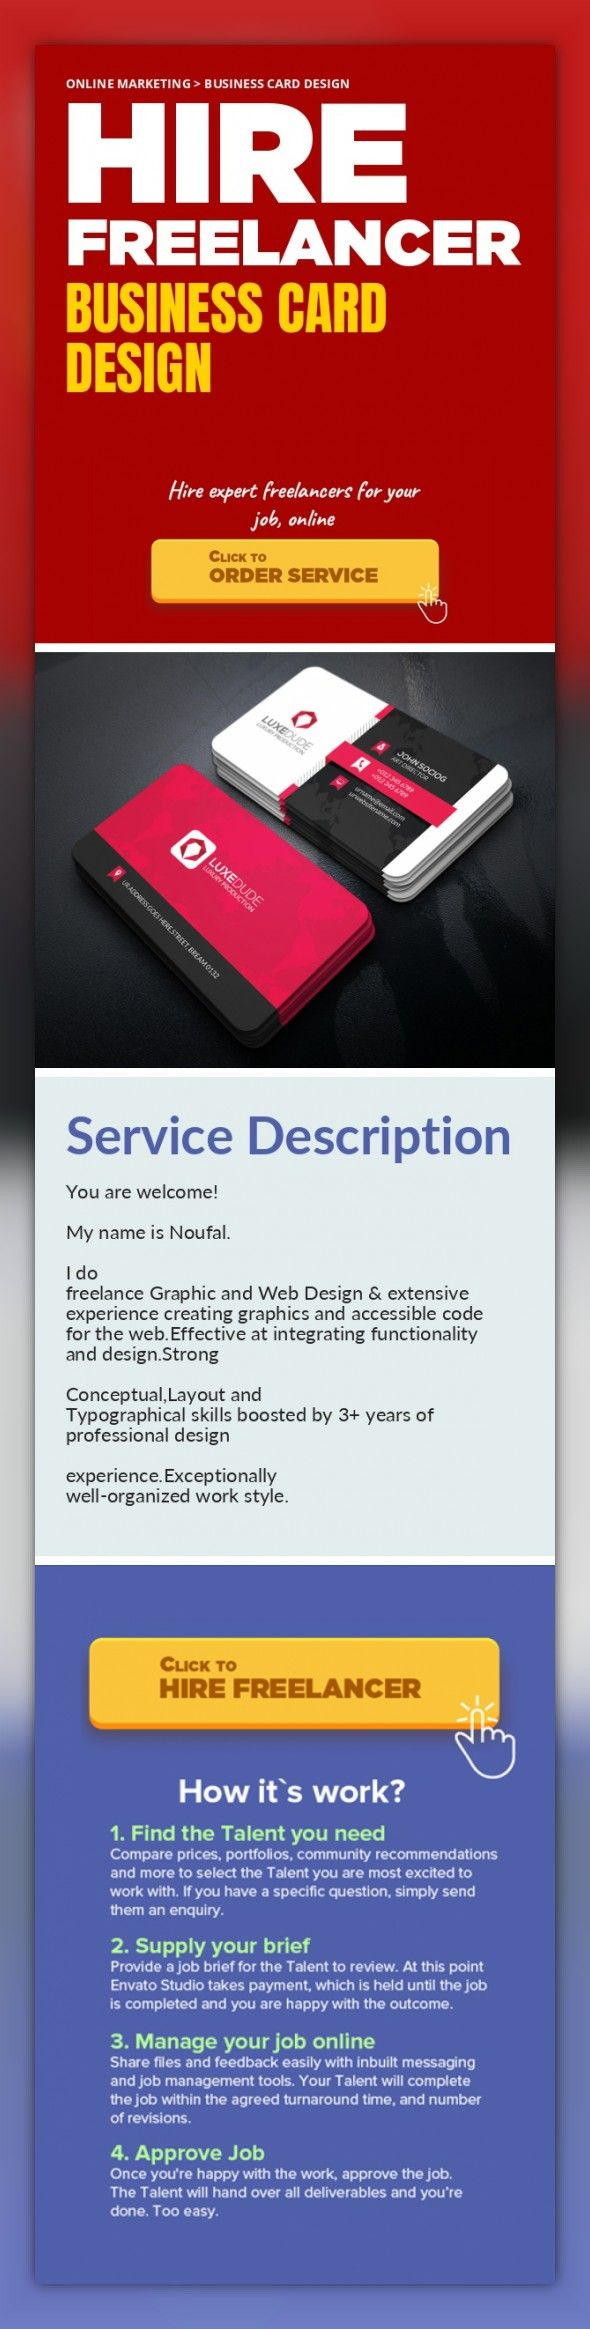 Business Card Design Online Marketing, Business Card Design   You are welcome!    My name is Noufal.    I do freelance Graphic and Web Design & extensive experience creating graphics and accessible code for the web.Effective at integrating functionality and design.Strong     Conceptual,Layout and Typographical skills boosted by 3+ years of professional design     experience.Exceptionally well-...